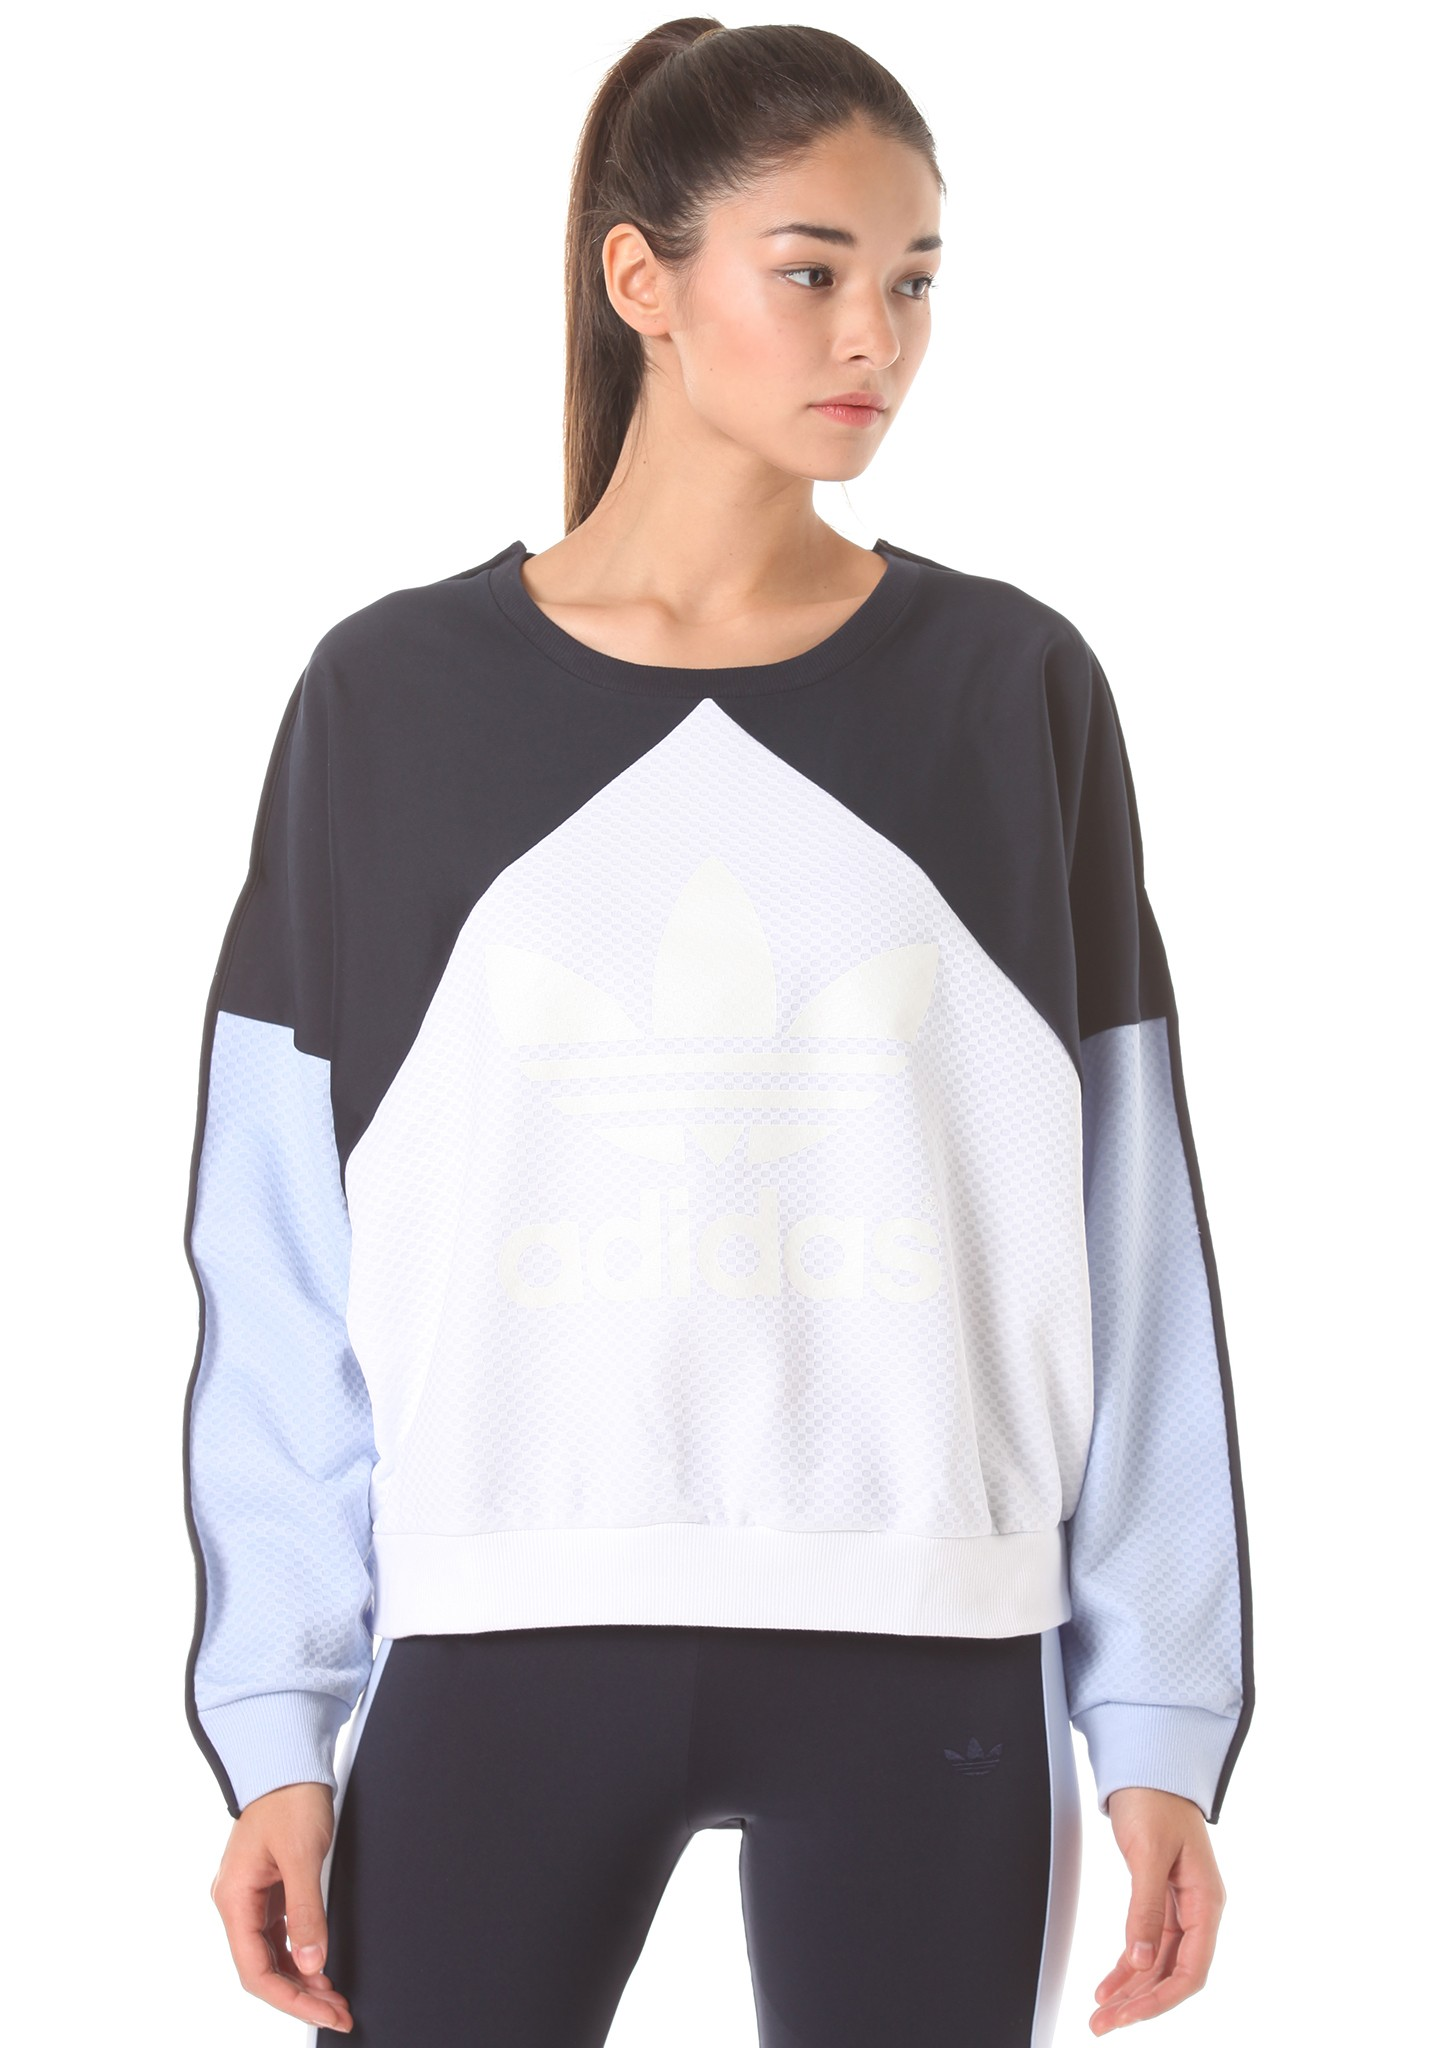 neu adidas helsinki authentic crew damen sweatshirt ebay. Black Bedroom Furniture Sets. Home Design Ideas